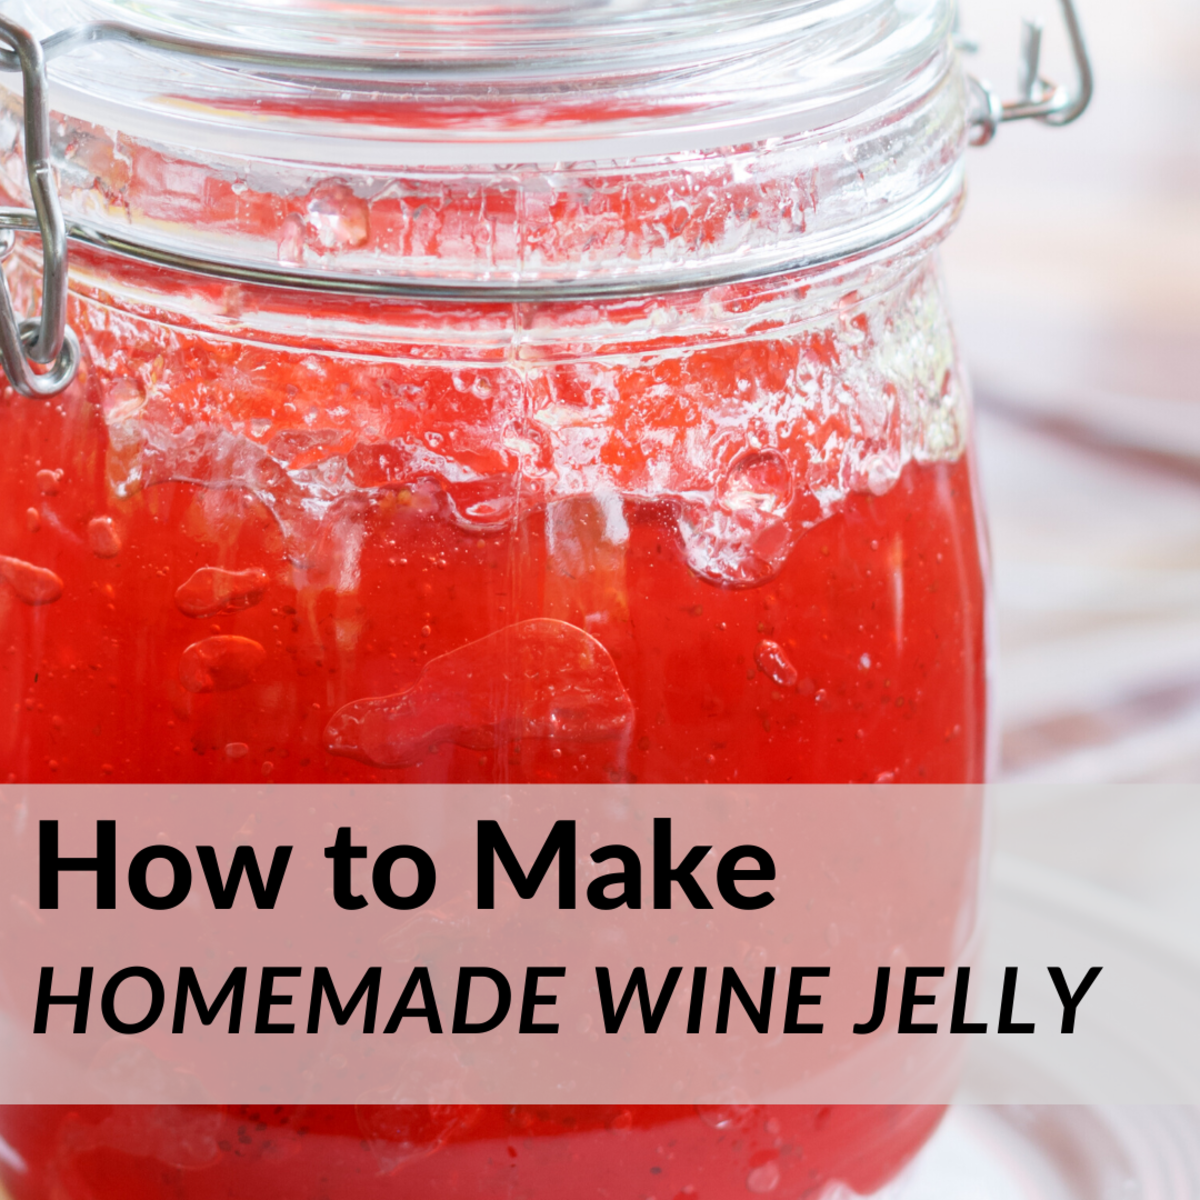 How to Make Homemade Wine Jelly